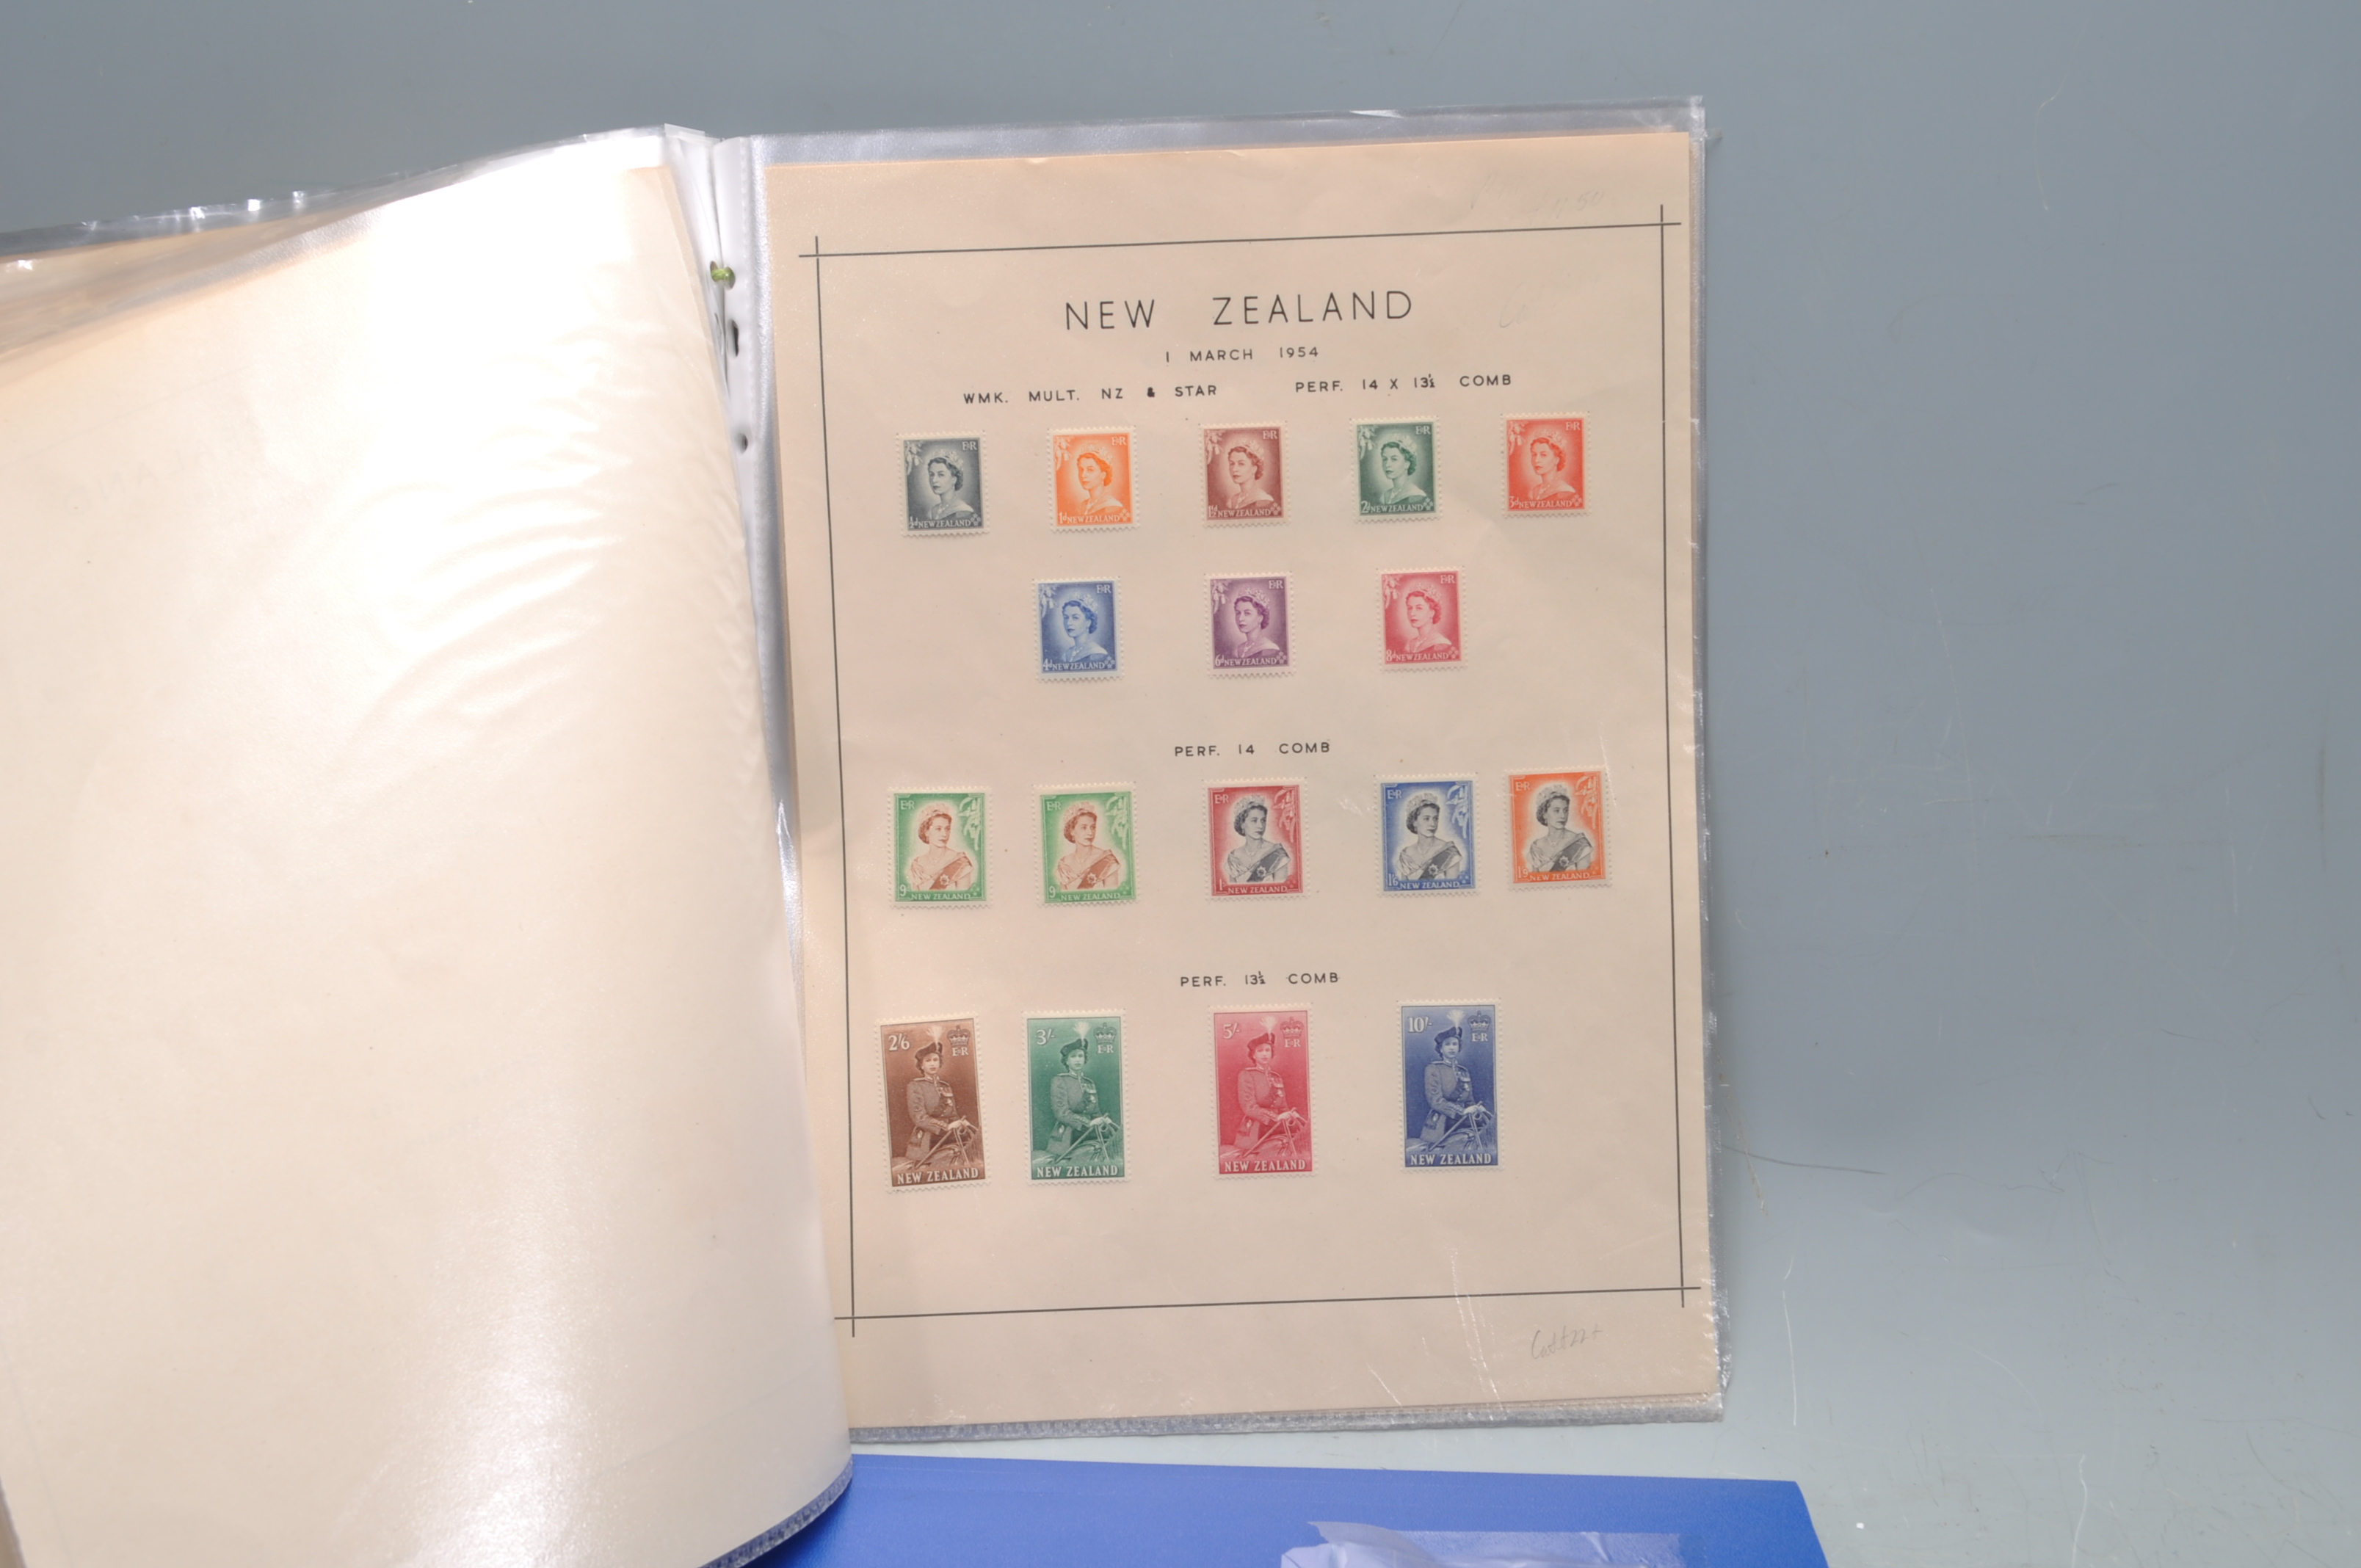 NEW ZEALAND MINT COLLECTION OF POSTAGE STAMPS - Image 8 of 8